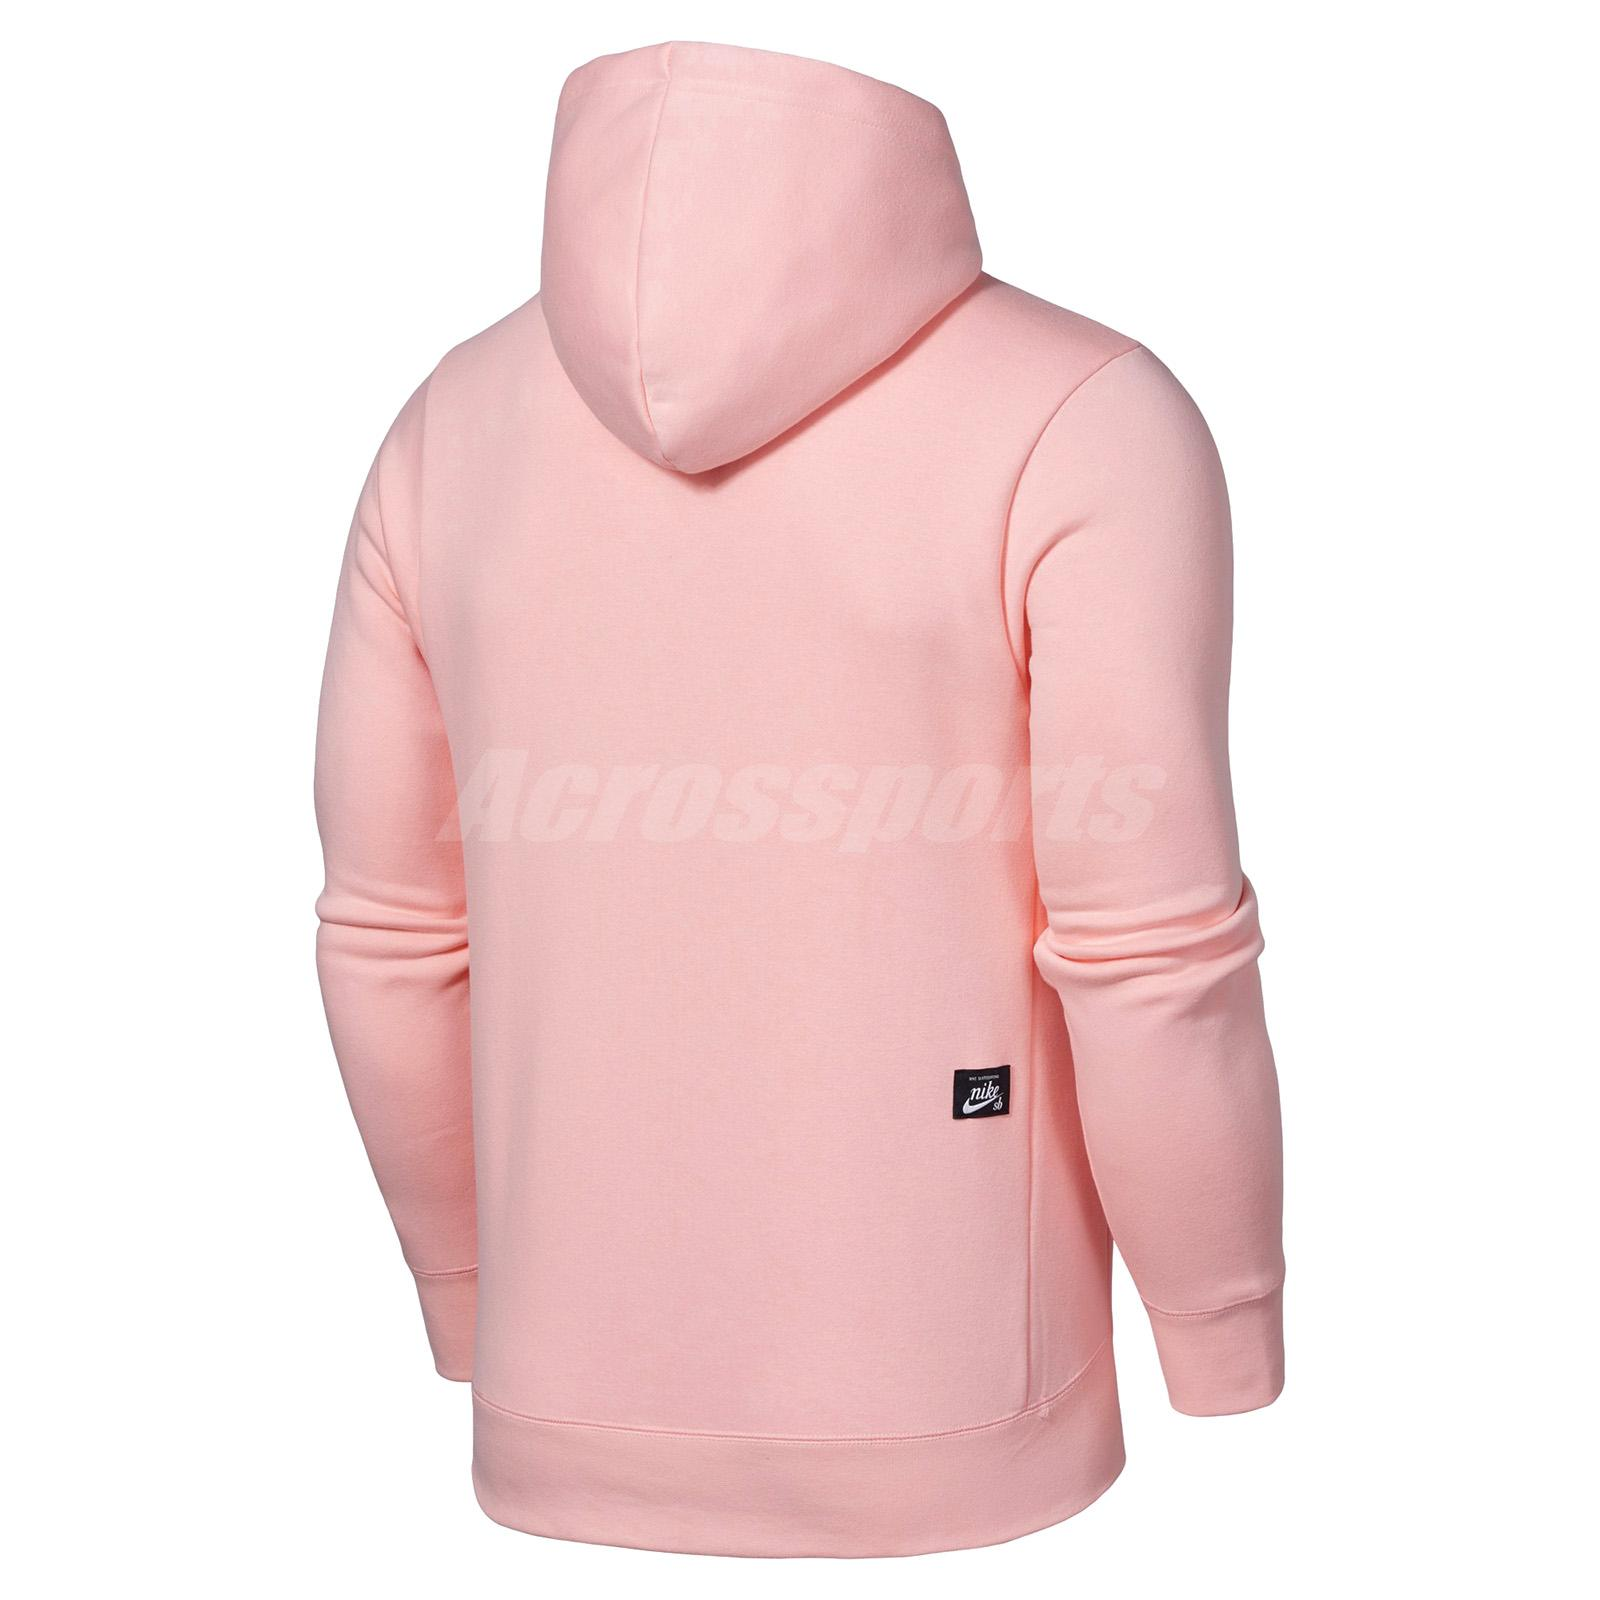 Details about Nike SB X NBA Icon Hoodie Fleece Pullover Basketball All Size  Pink 938413-646